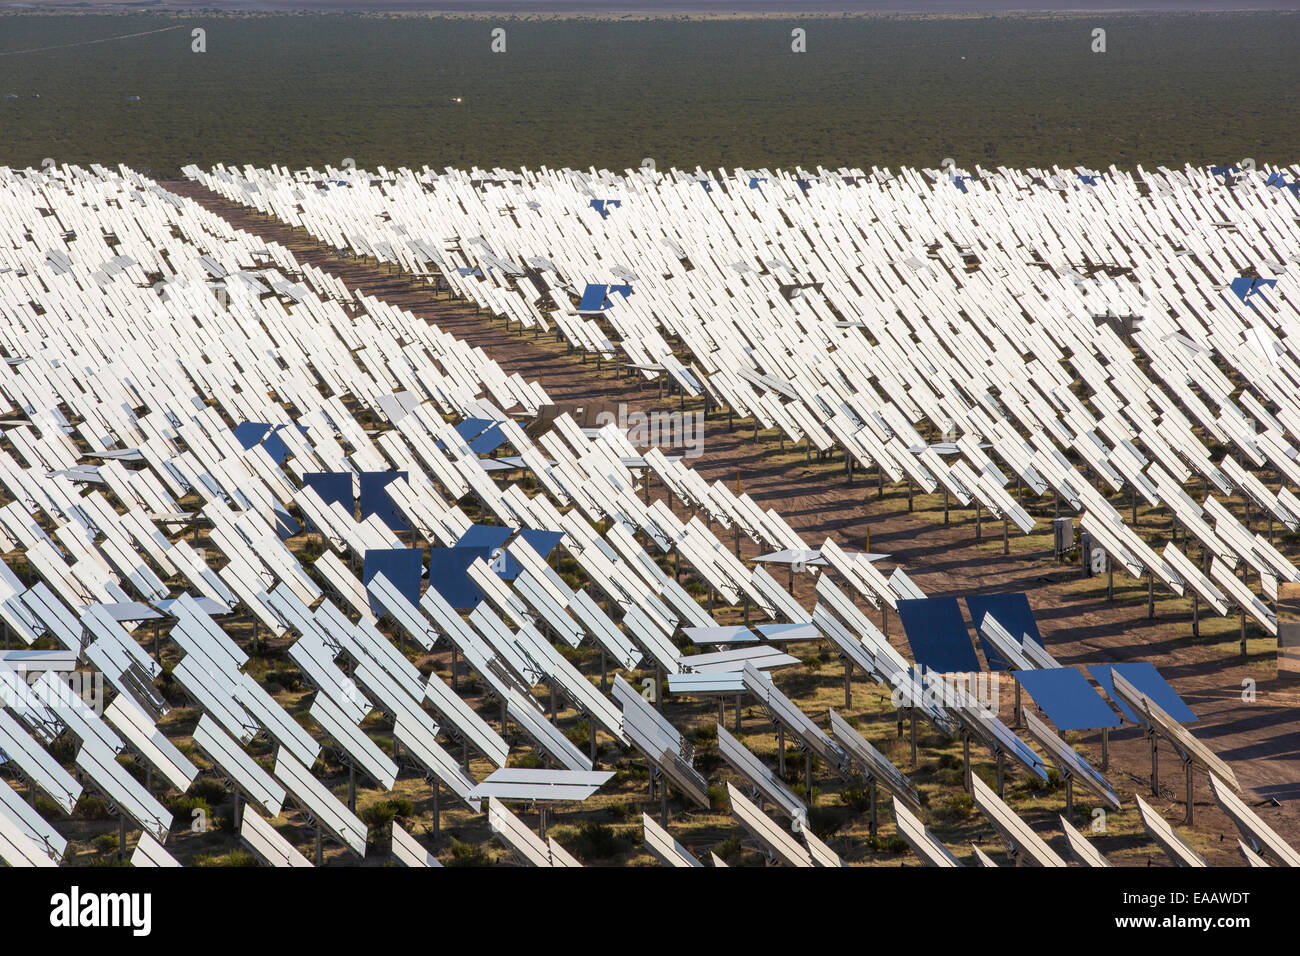 The Ivanpah Solar Thermal Power Plant in California''s Mojave Desert is currently the largest solar thermal - Stock Image